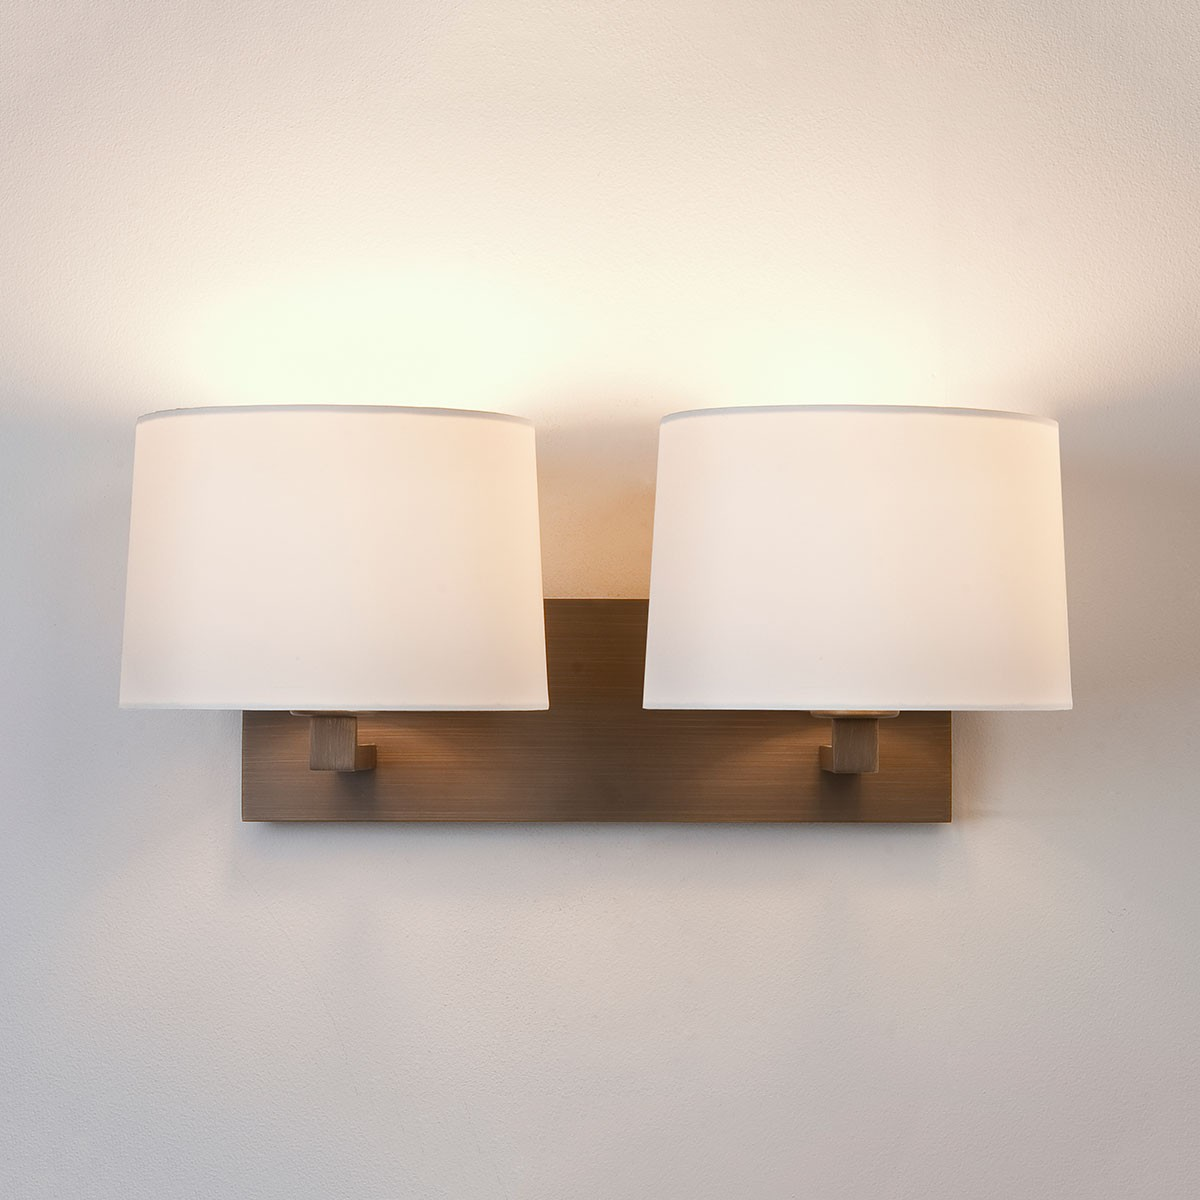 Astro Azumi Twin Bronze Wall Light at UK Electrical Supplies.